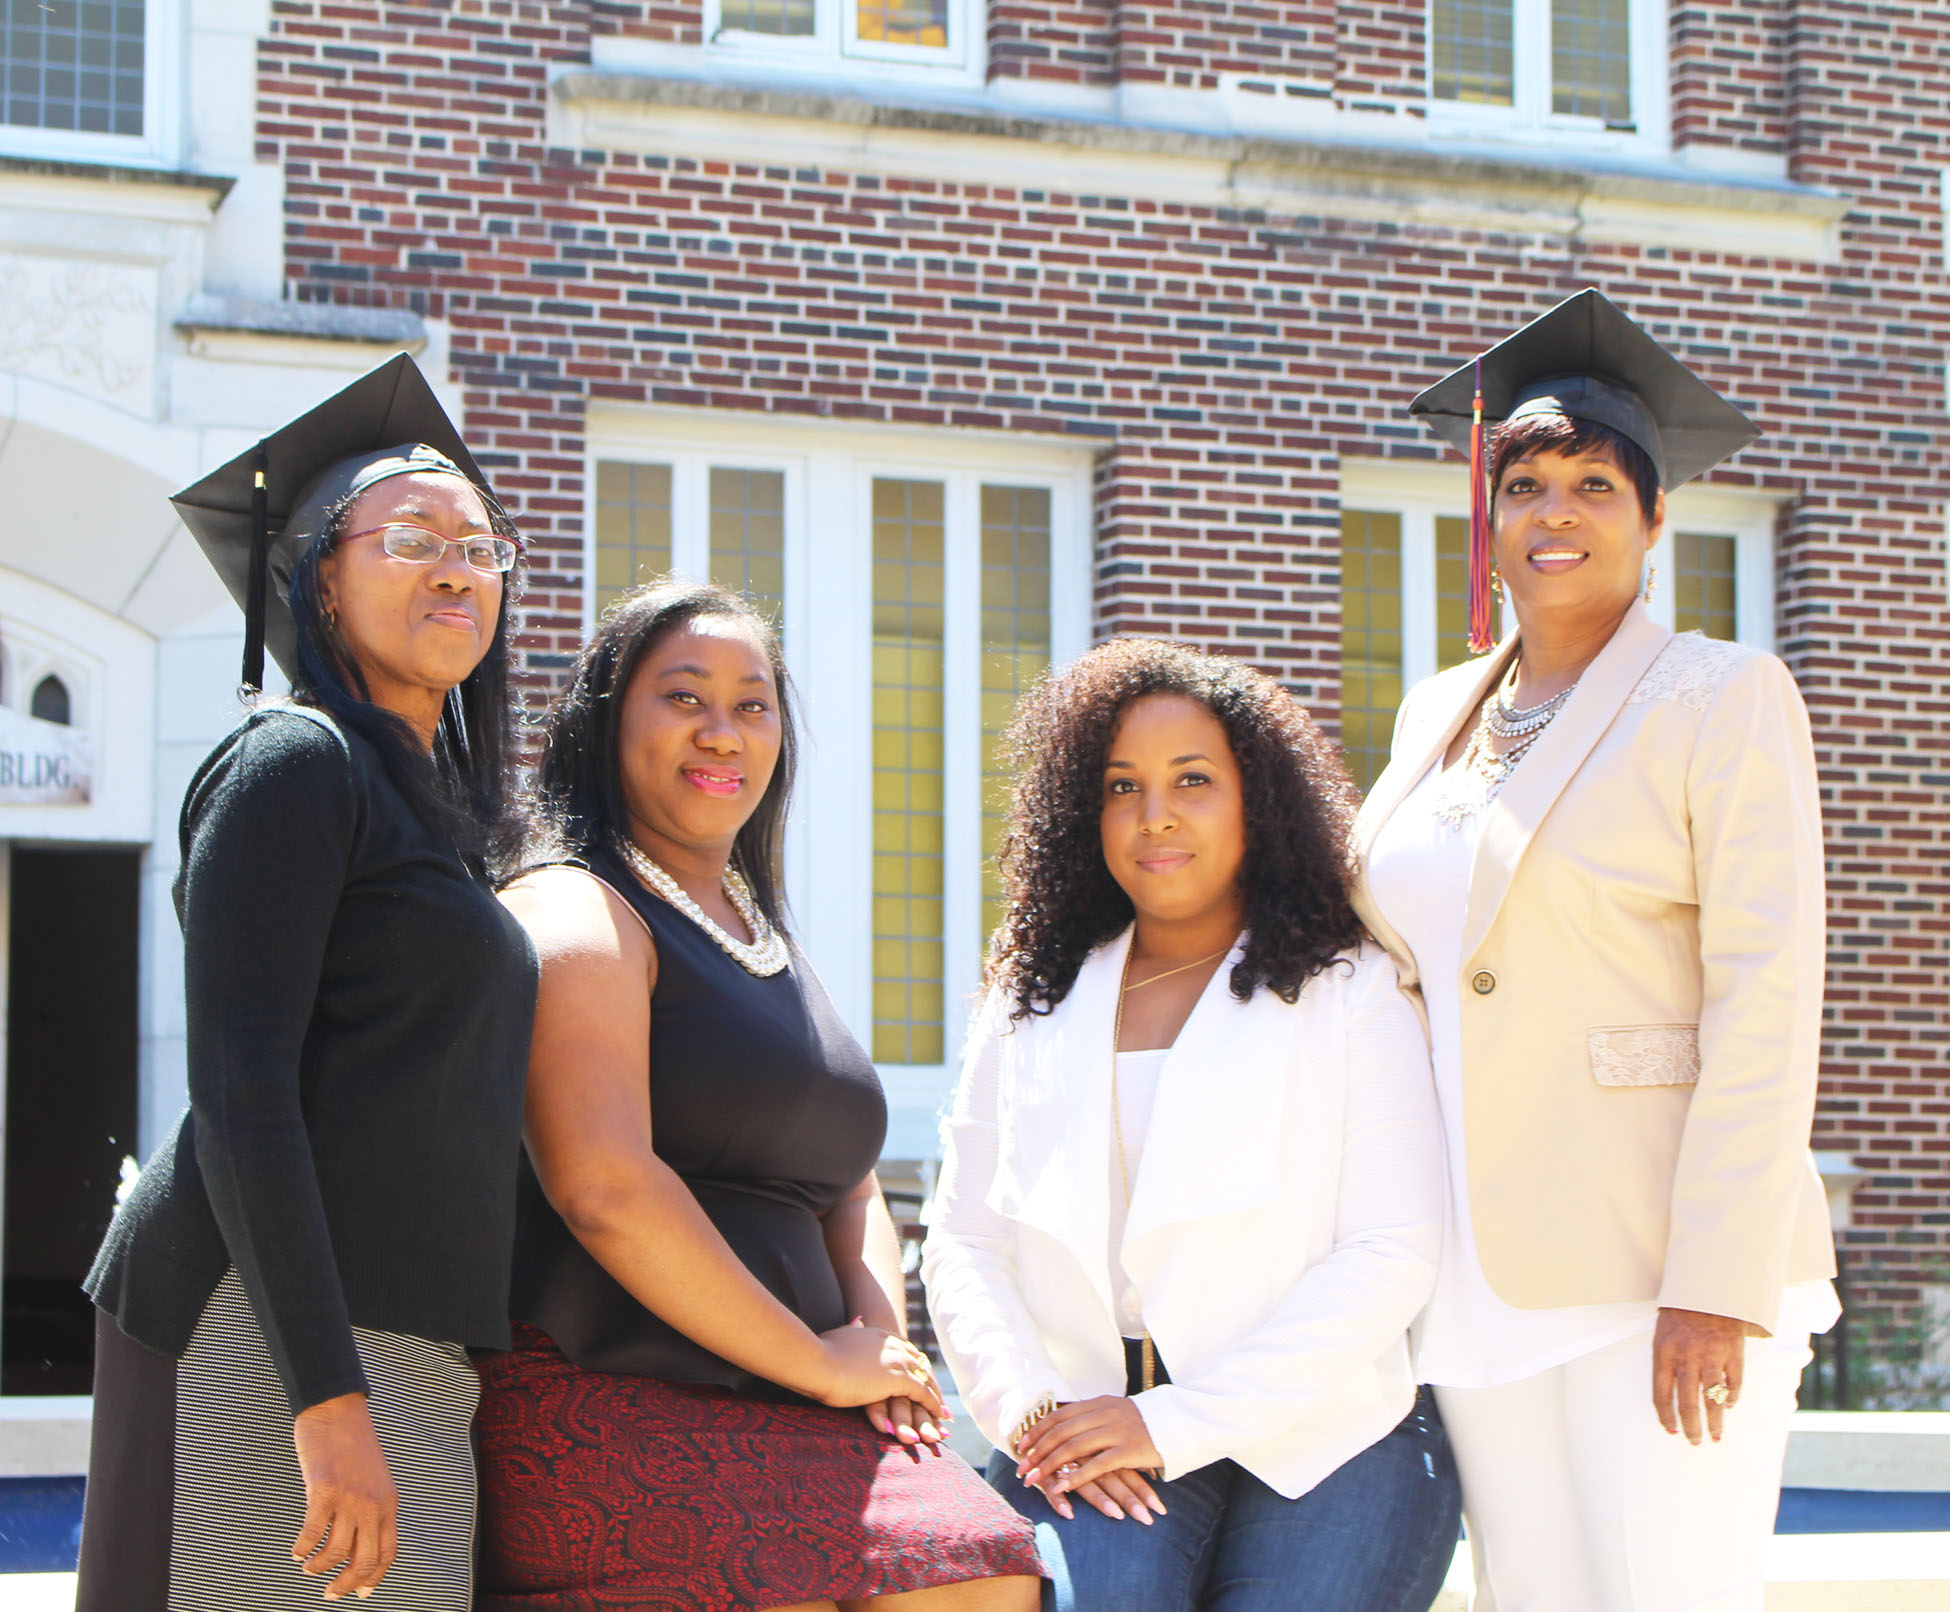 Joyce Truett (mother), Tiffany Nealy (daughter),  Tarayla Slaughter (daughter) and Terrilyn Smith (mother)